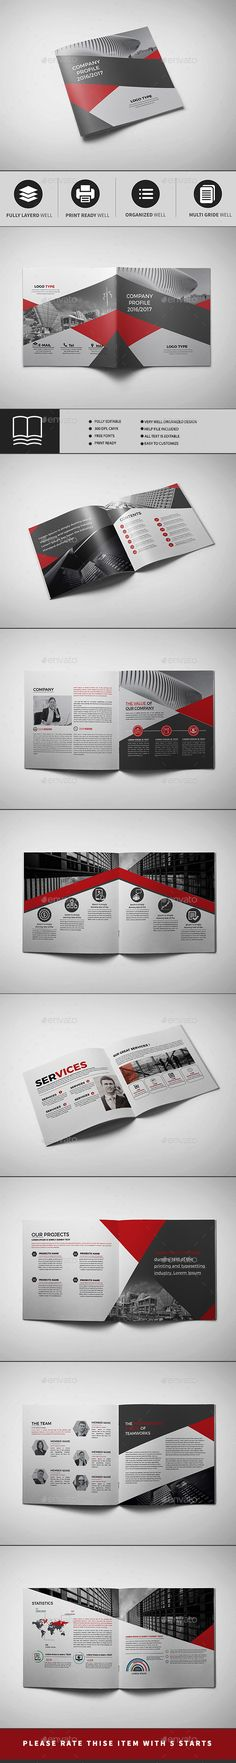 Corporate Business Square Brochure 16 Pages Template InDesign INDD